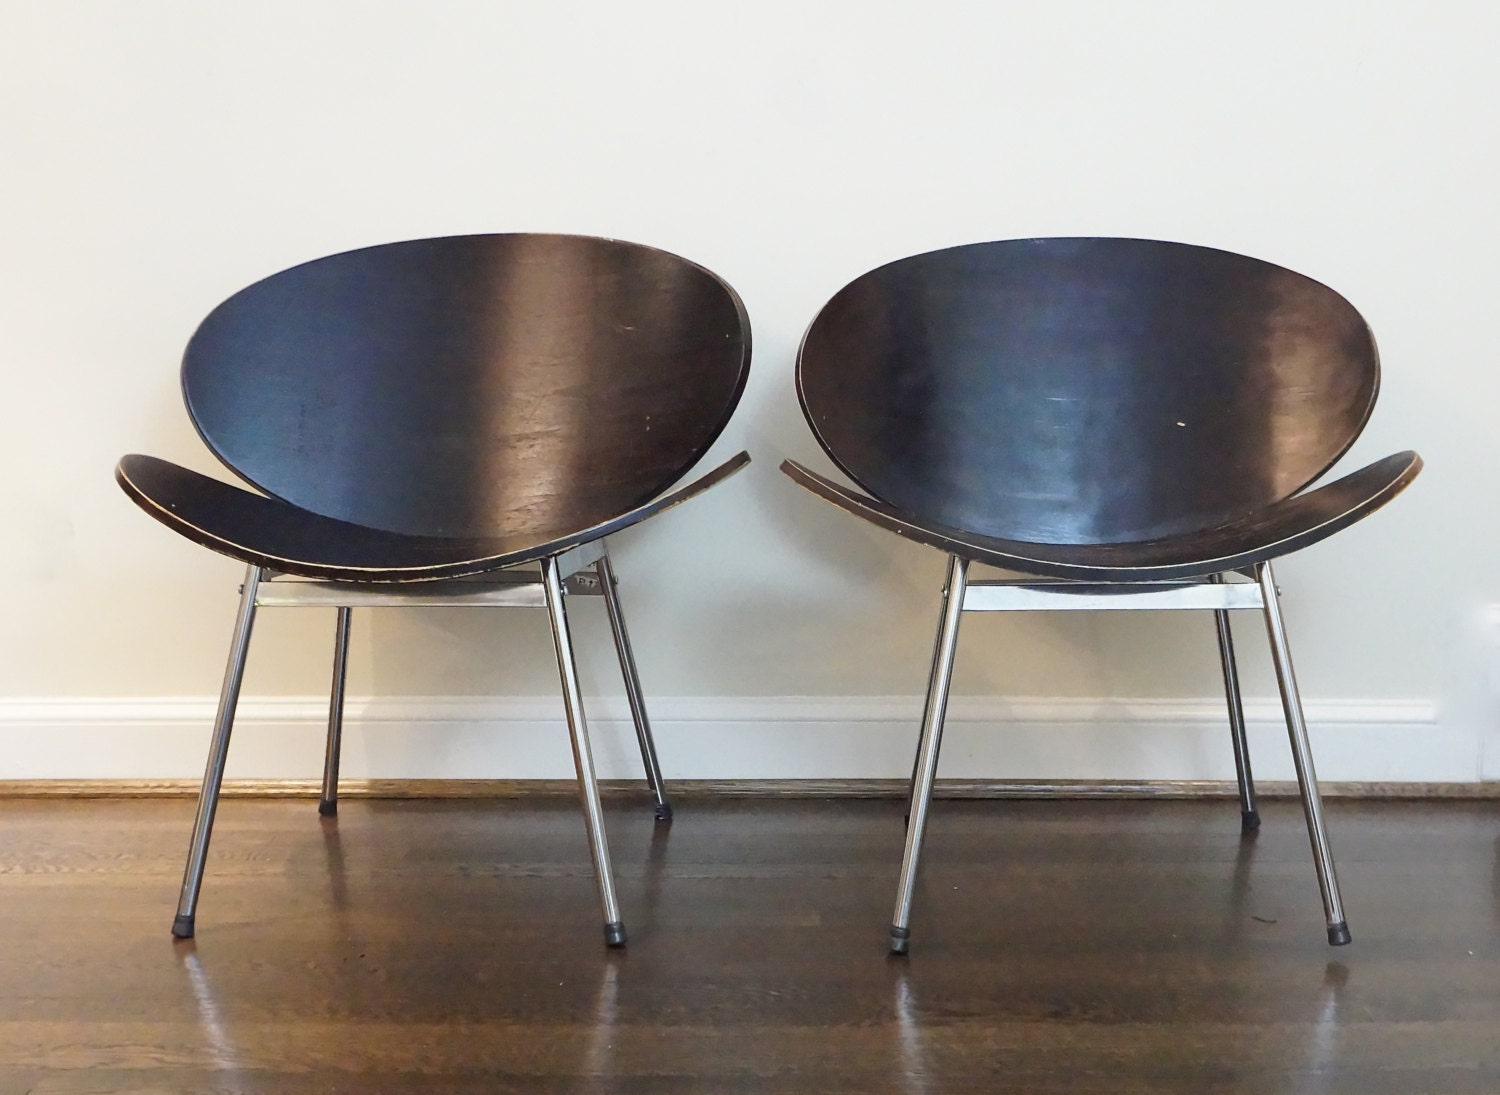 Uncategorized Clamshell Chair Mid Century Clam Shell Chairs Pierre Paulin  Style Orange Like This Item